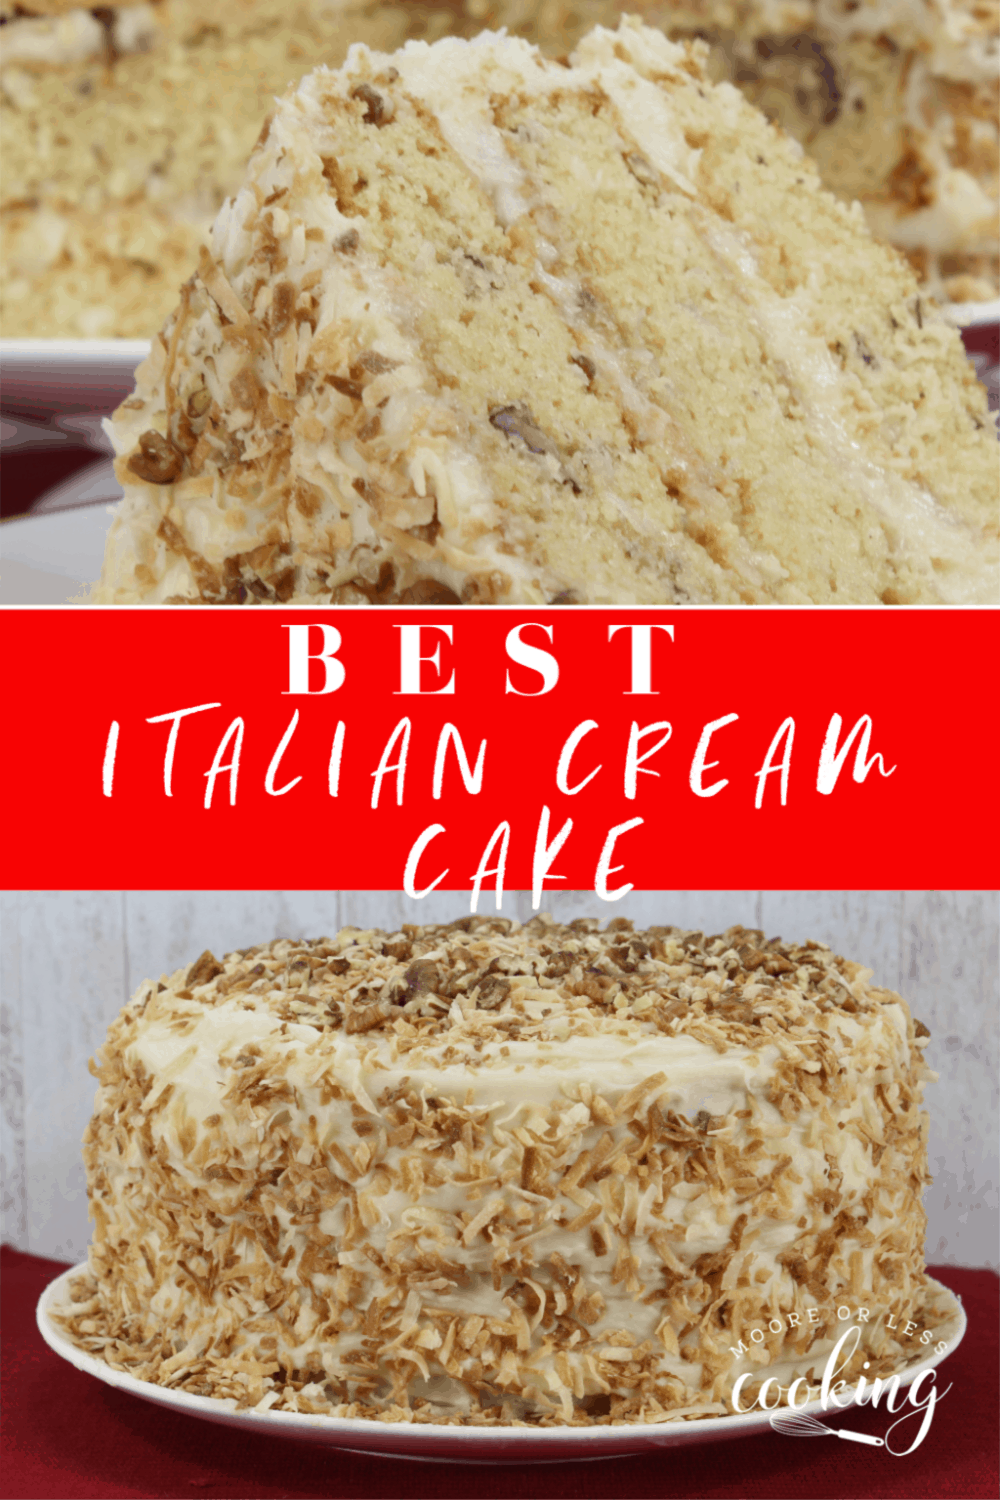 Italian Cream Cake~ This show stopper cake has 3-layers of the moistest, delicious cake that is made with toasted coconut, pecans, and a fluffy cream cheese frosting.  #mooreorlesscooking #Italiancake #creamcake #cake #pecans #coconut via @Mooreorlesscook